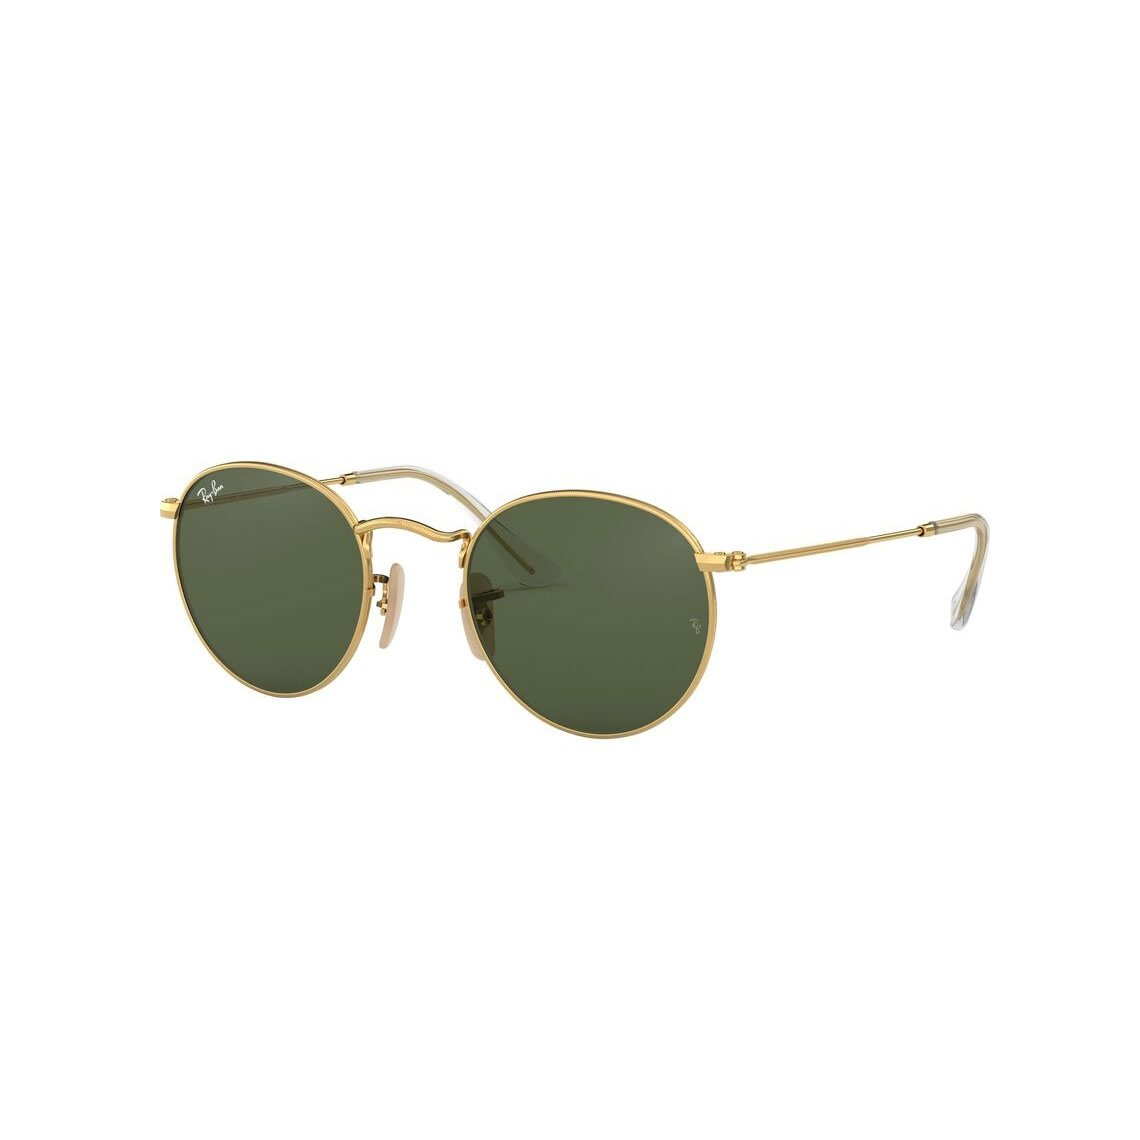 Ray-Ban Round metal RB3447N 001 53